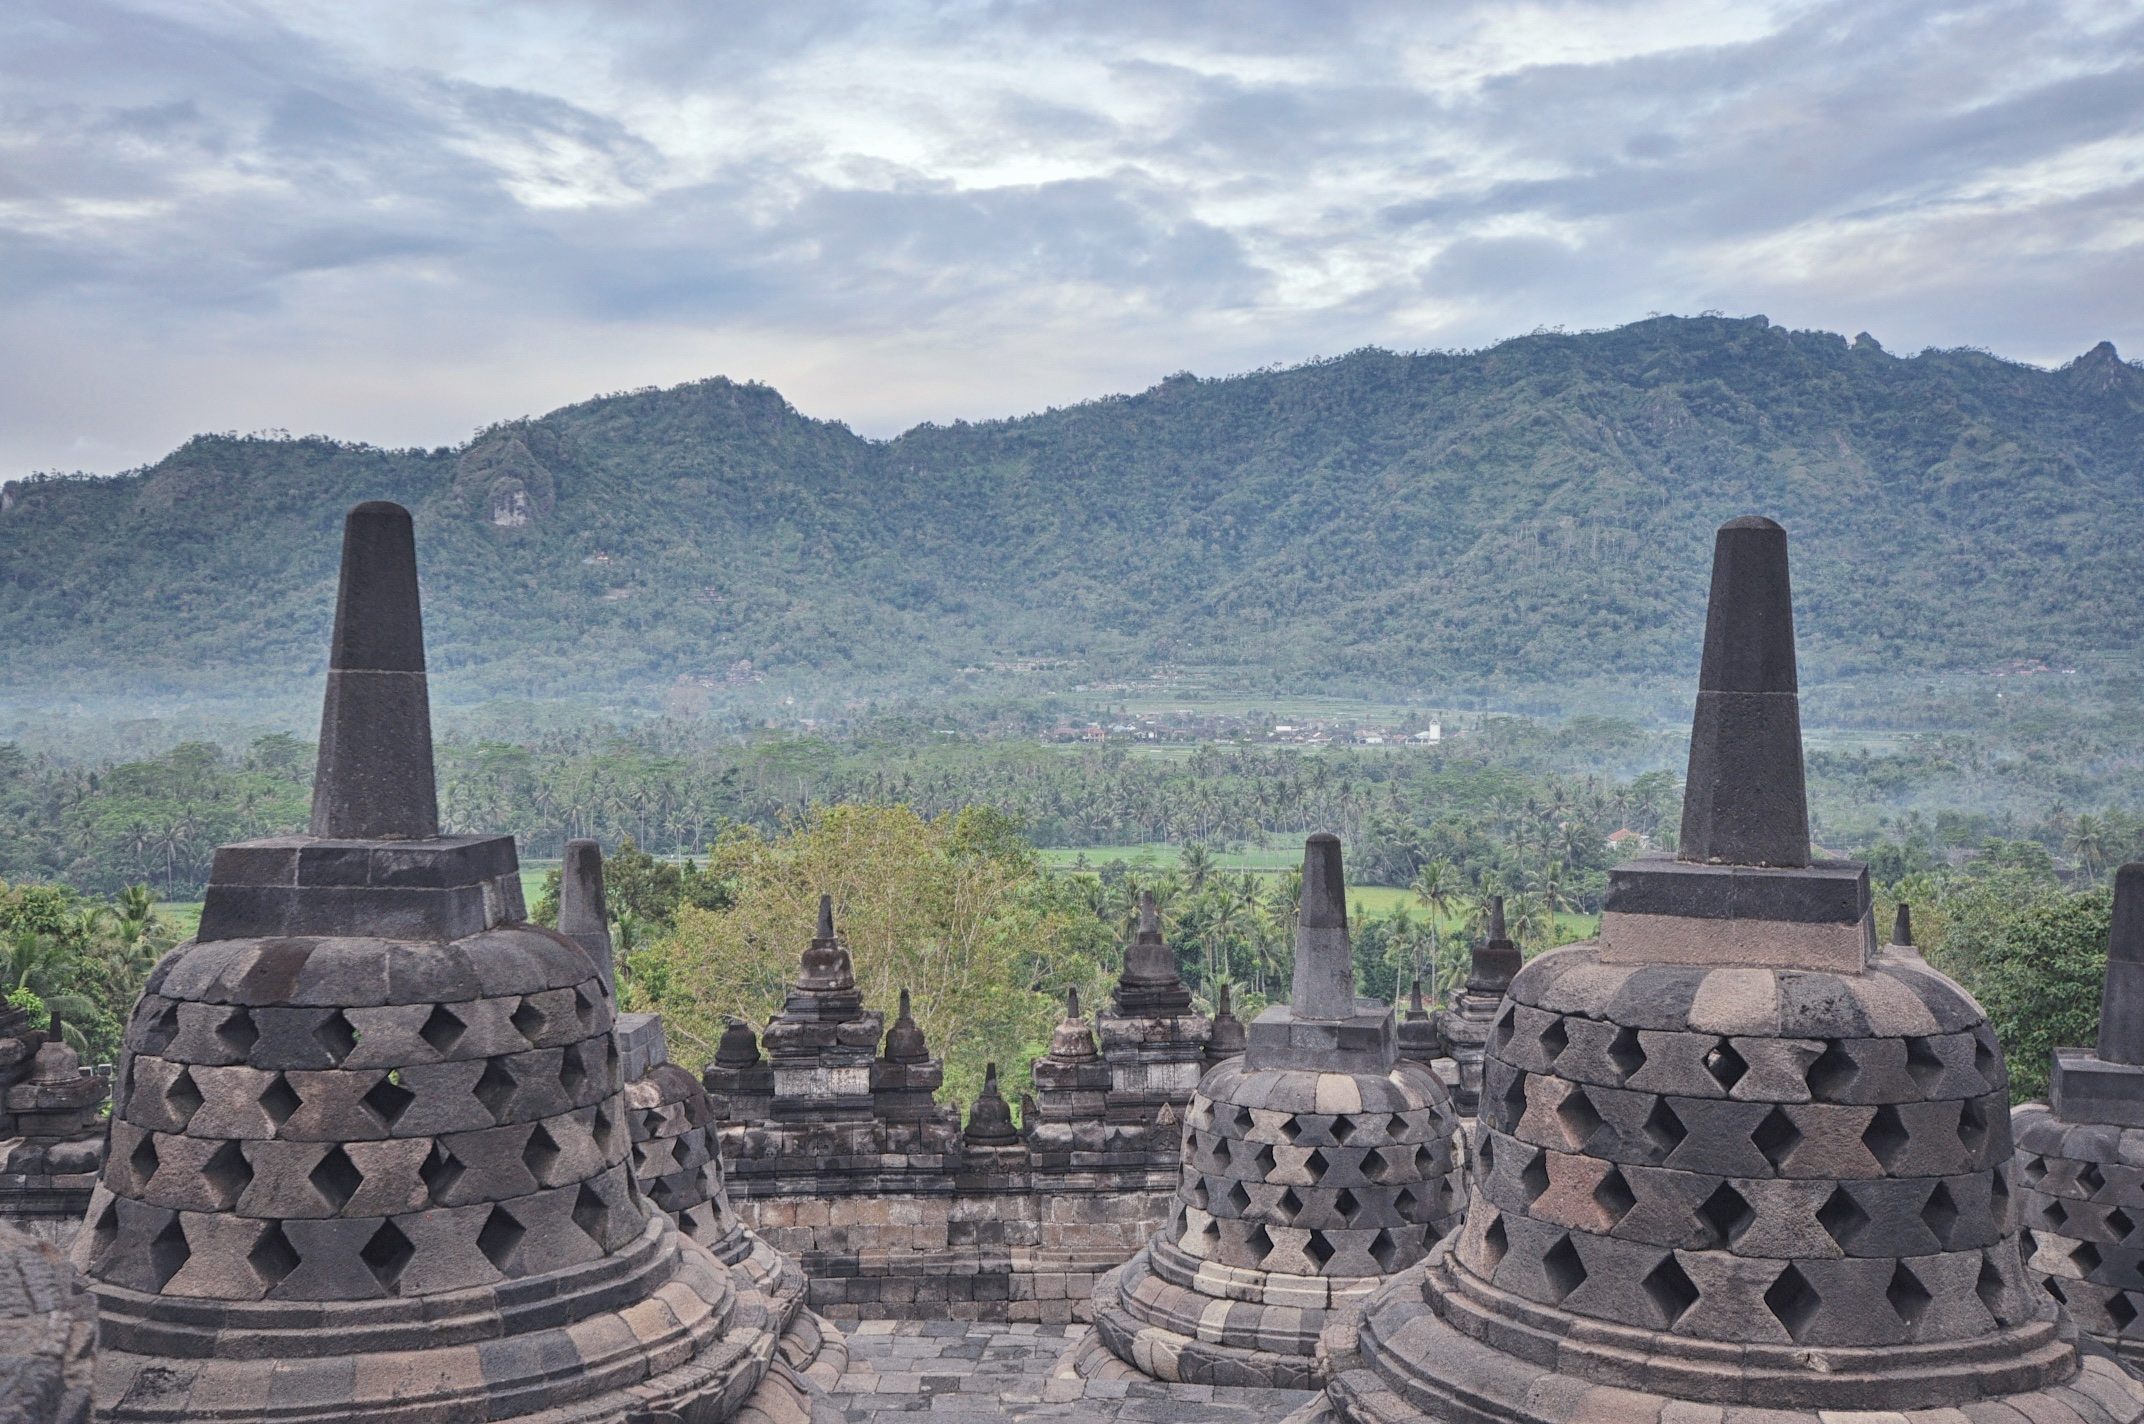 Standing at the top of Borobudur temple looking down, with Menoreh Hills in the background | © Chavelli Tsui www.chavelli.com